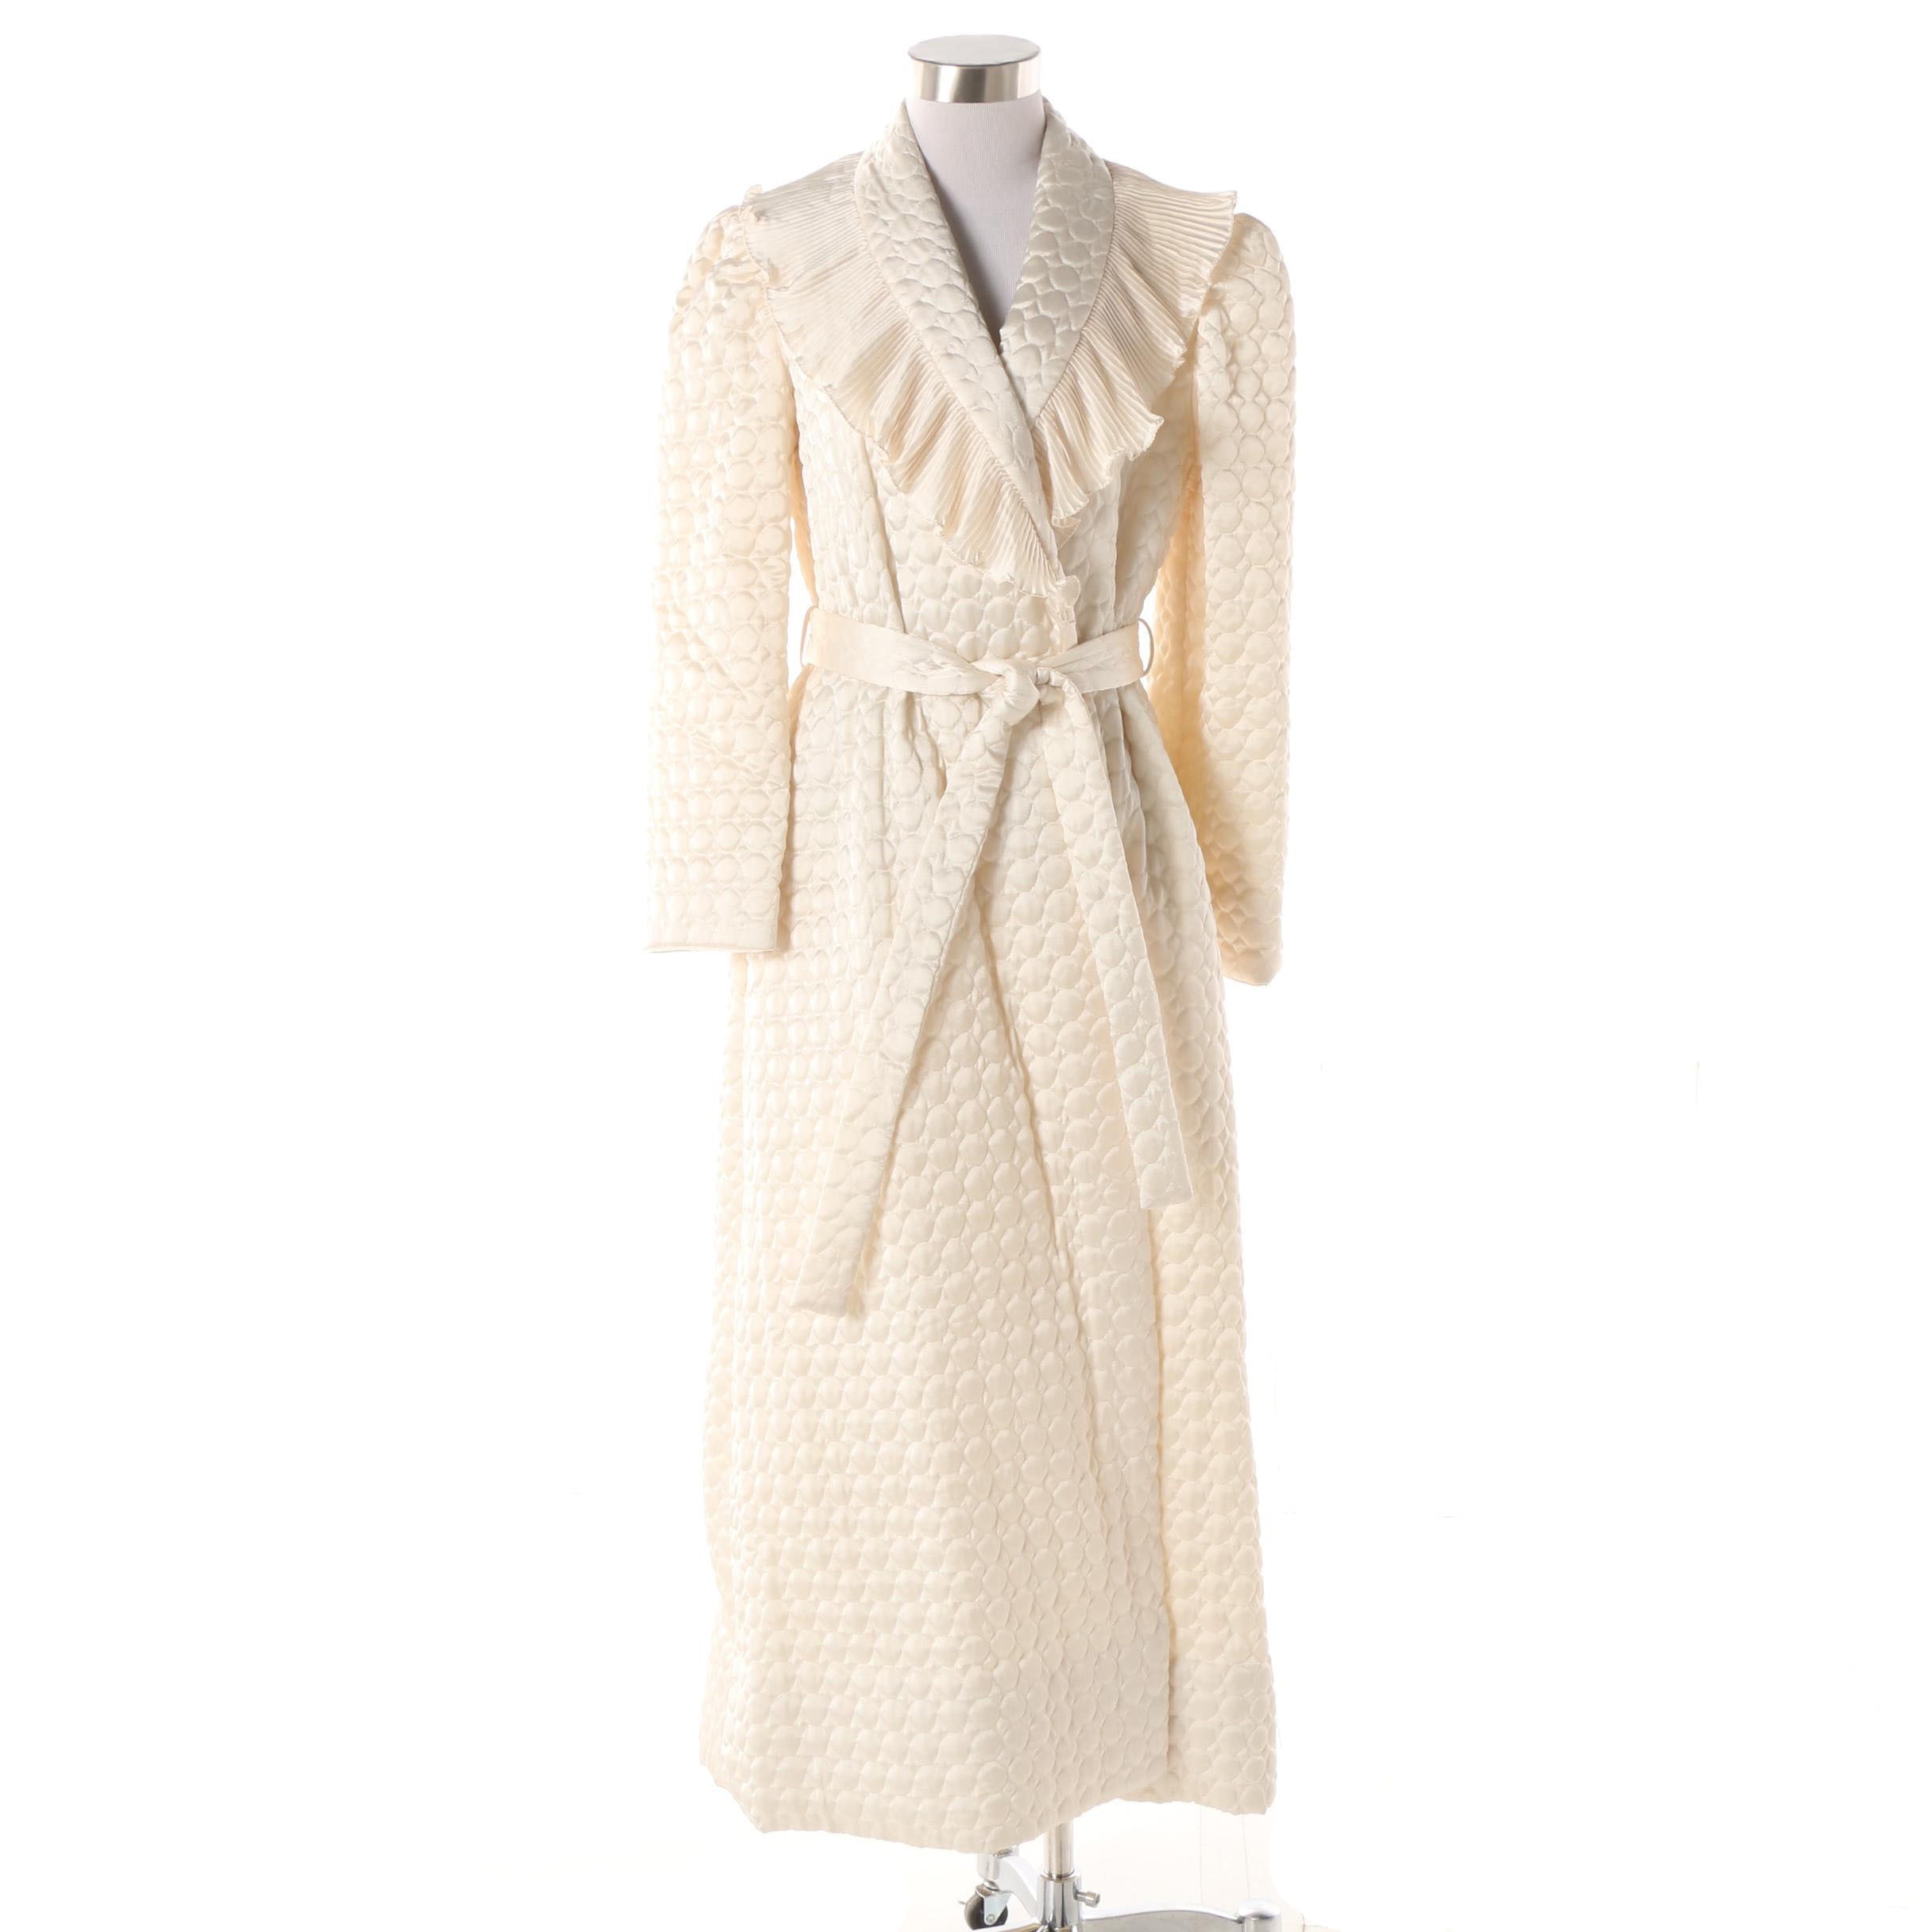 Women's 1980s Vintage Lanvin White Quilted Robe with Ruffled Plissé Collar